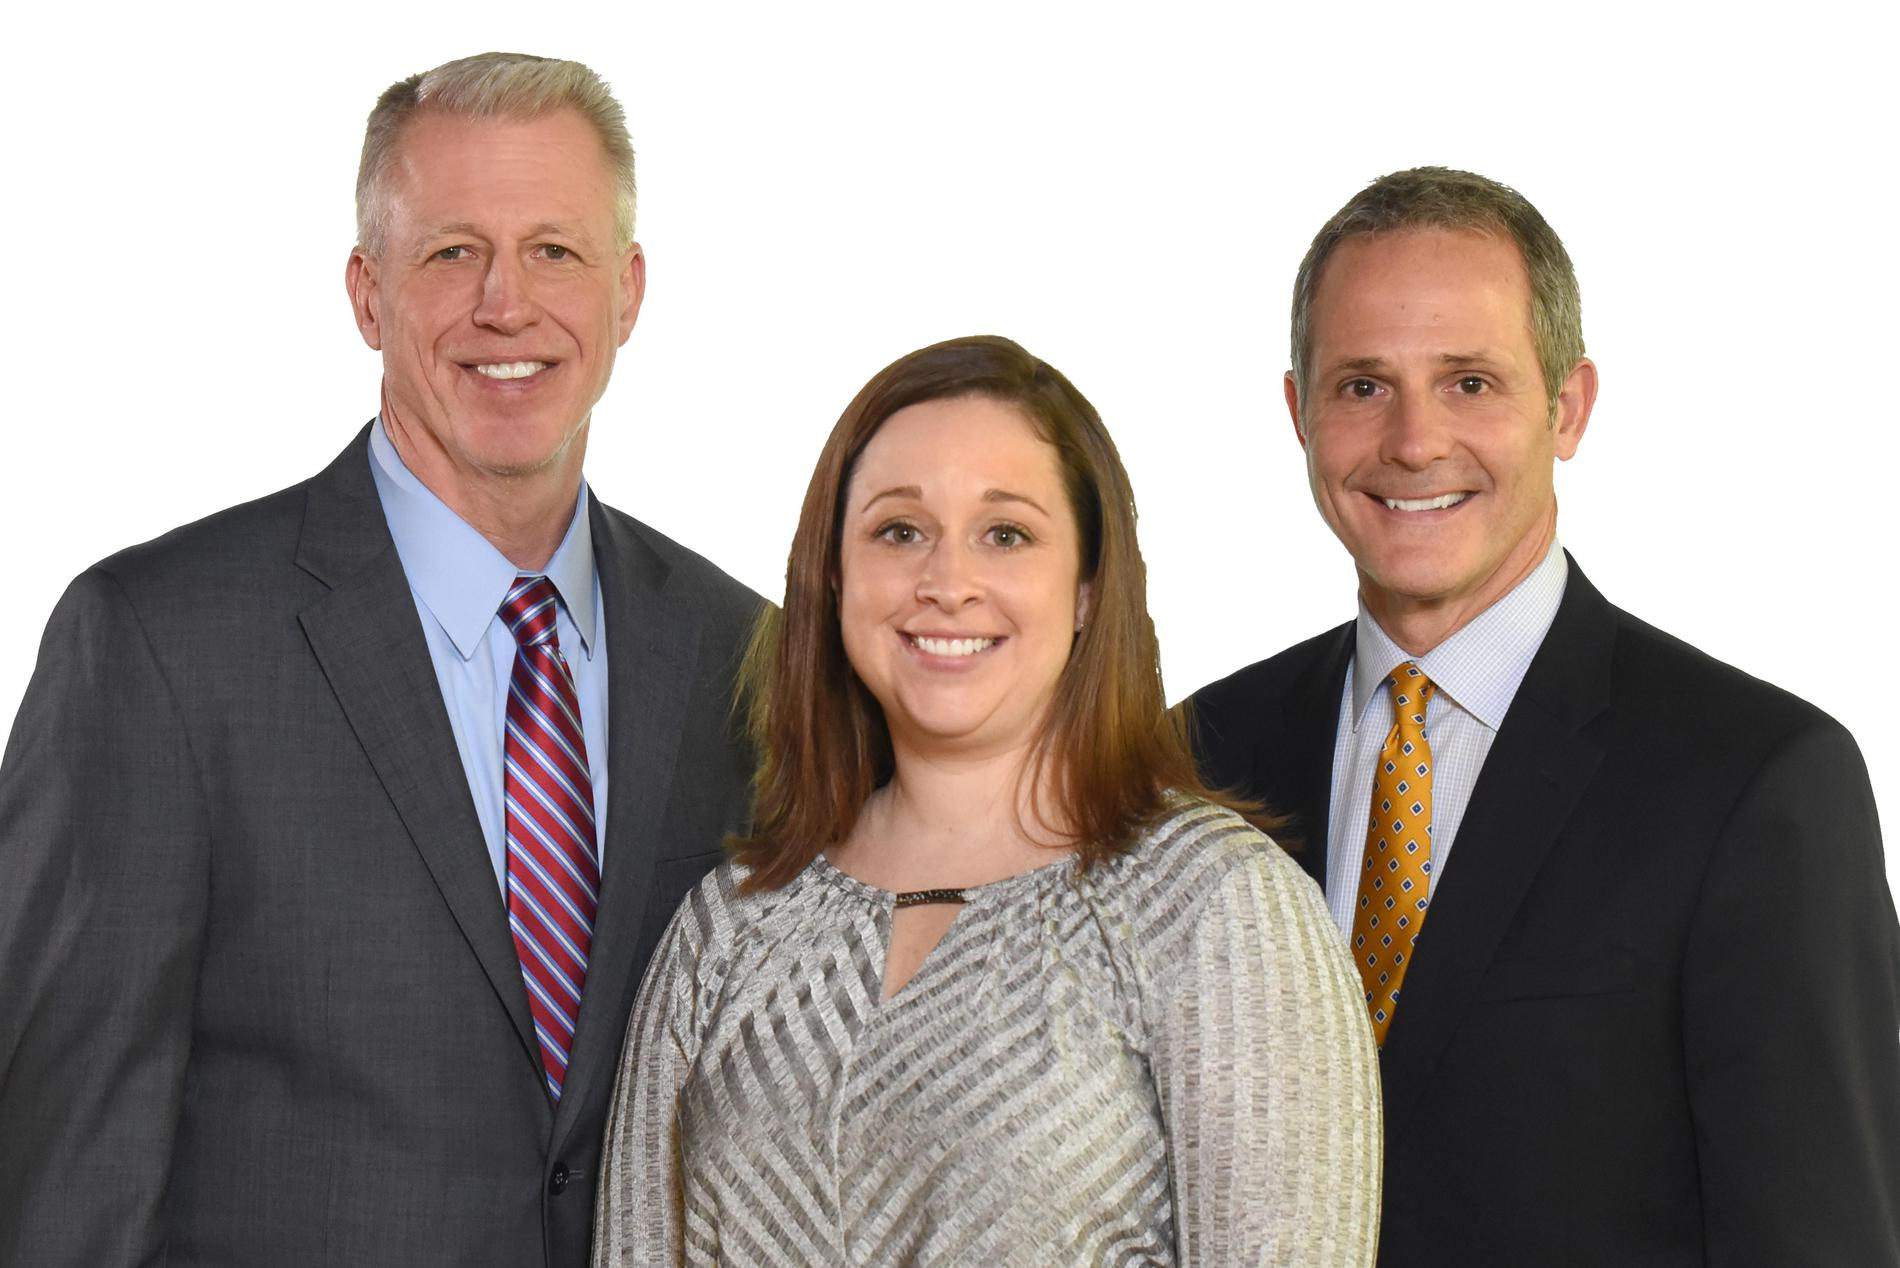 The Custer Meisch Group | Rockford, IL | Morgan Stanley Wealth